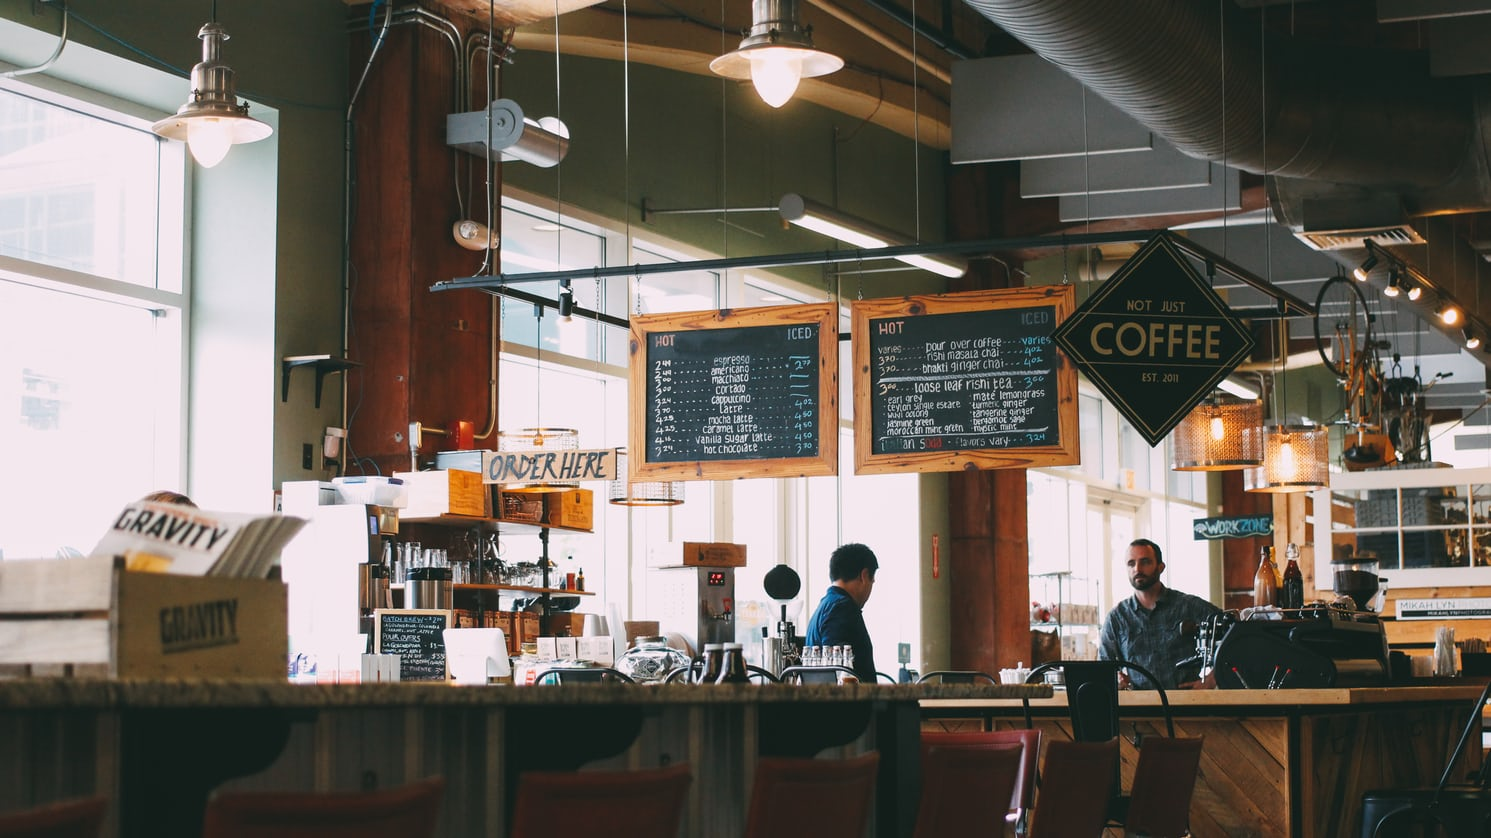 Coffee shop | Jazmin Quaynor on Unsplash